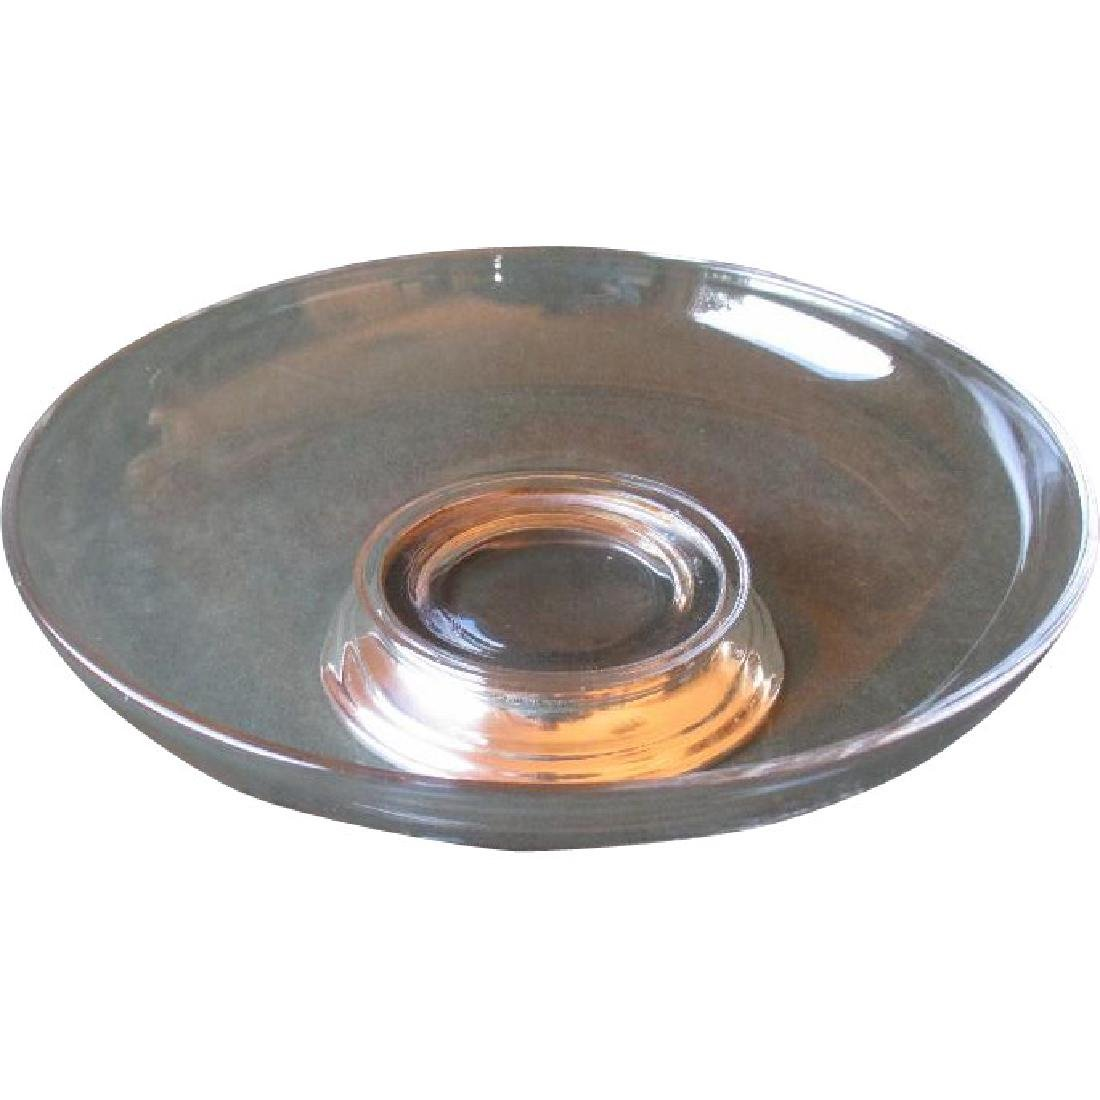 Beautiful Glass Center / Serving Bowl with Sterling